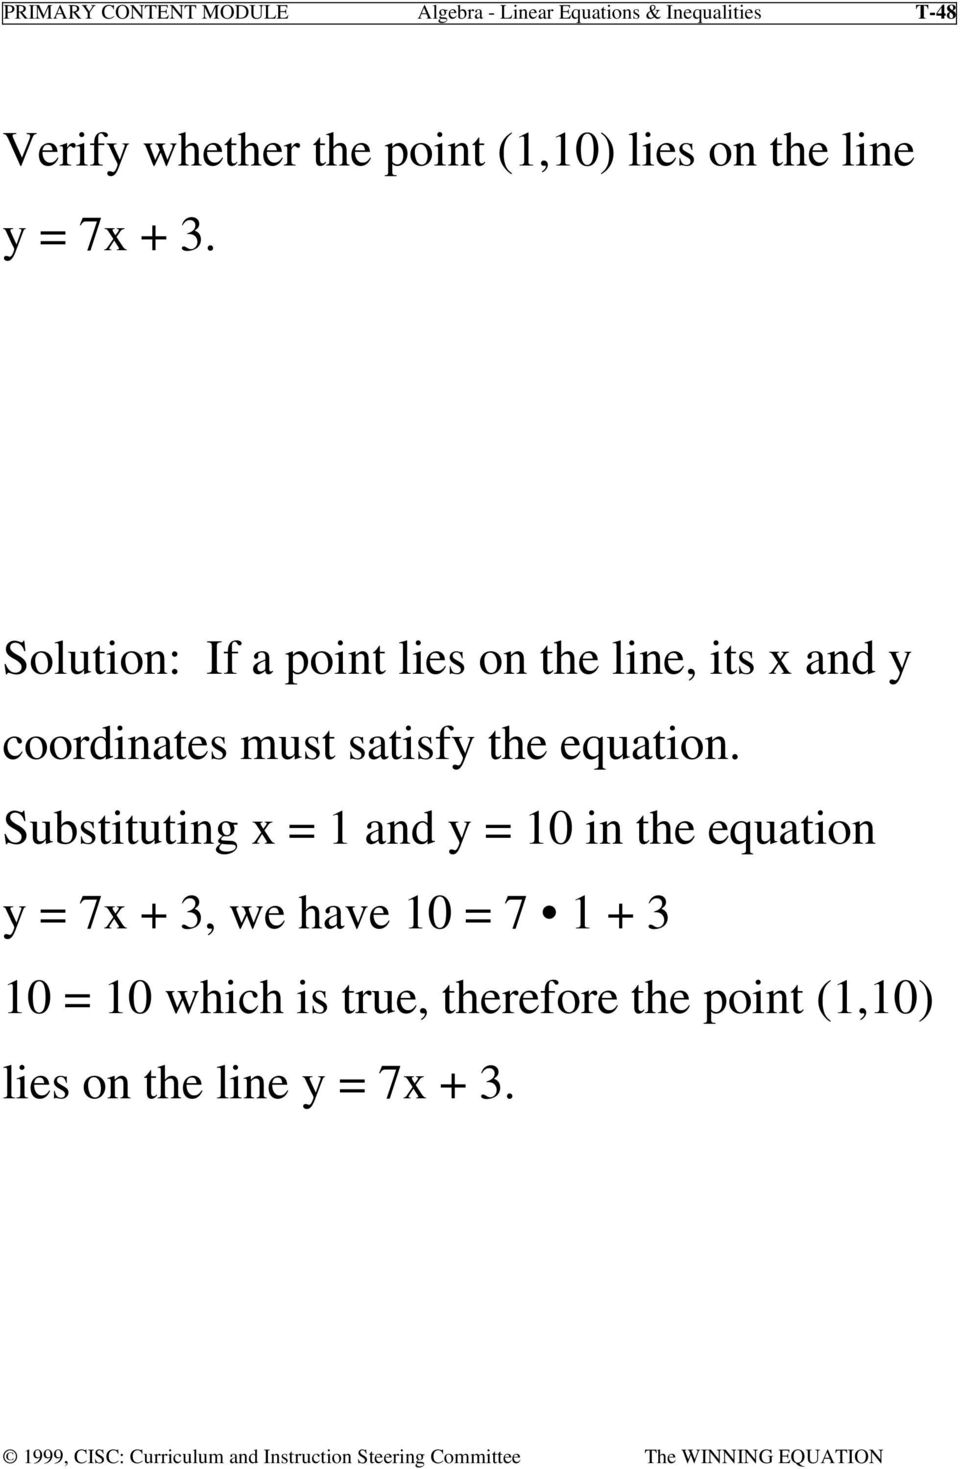 Solution: If a point lies on the line, its x and y coordinates must satisfy the equation.